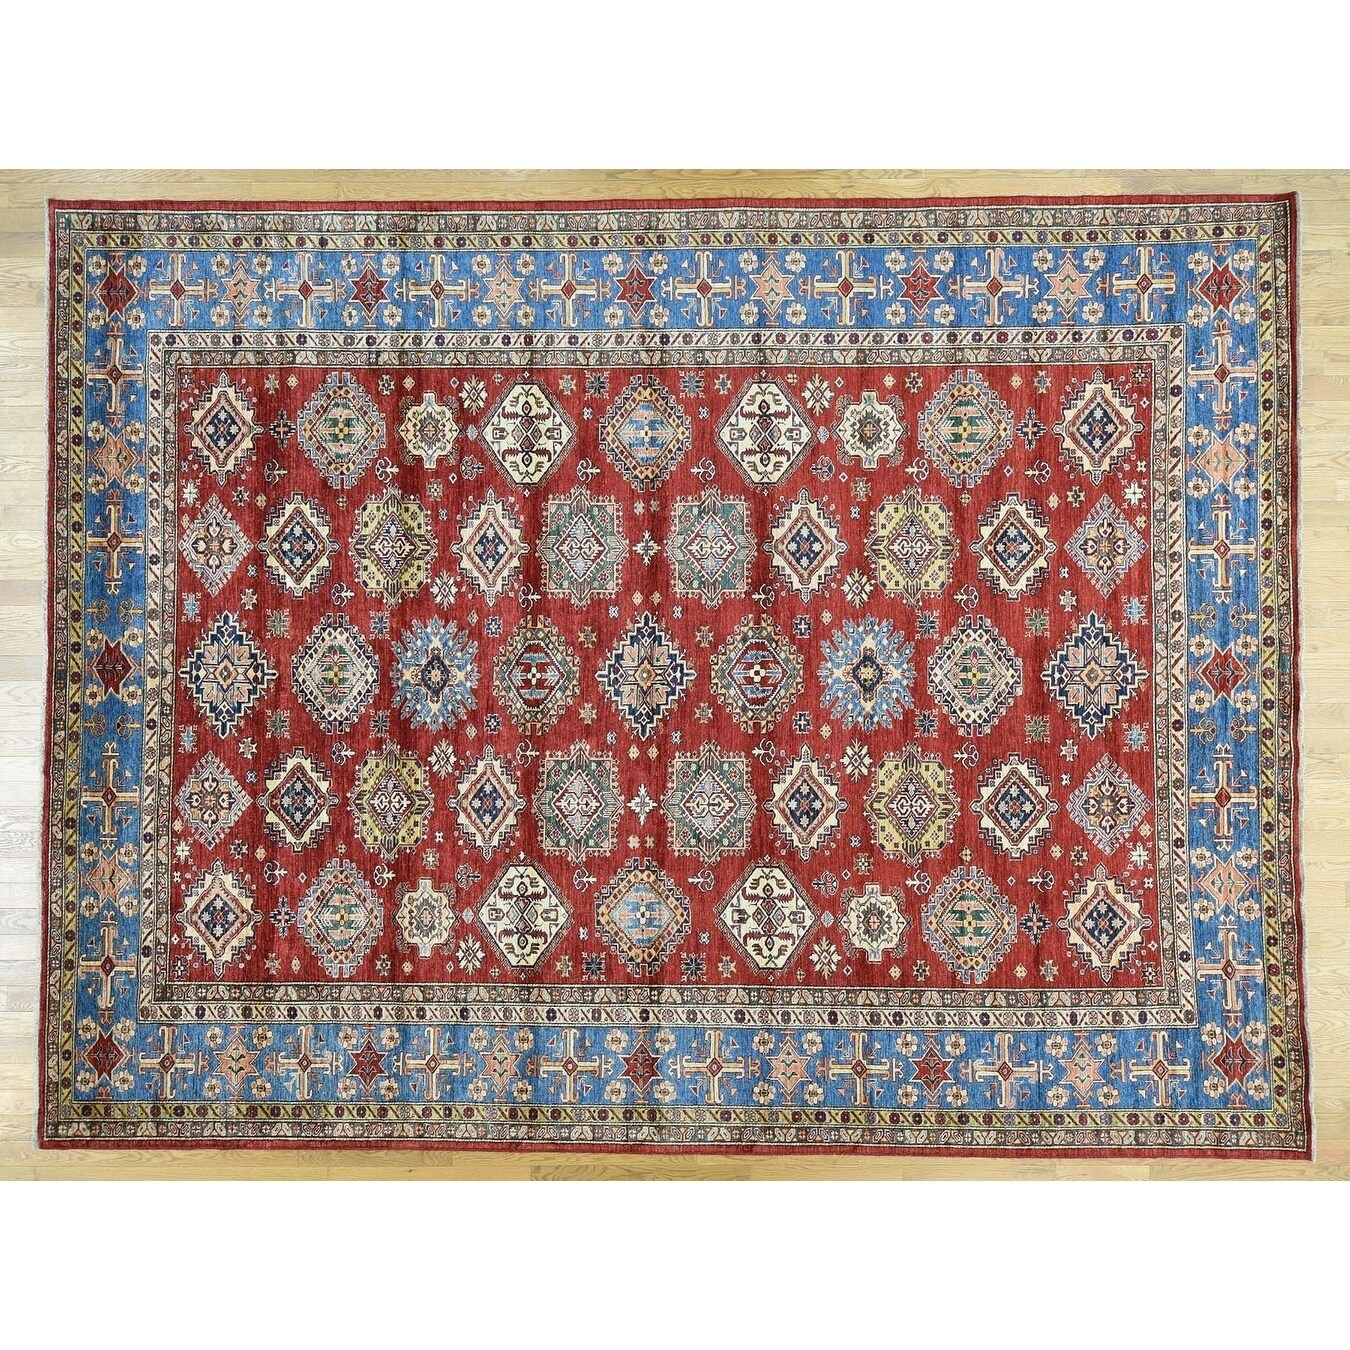 Hand Knotted Red Kazak with Wool Oriental Rug - 103 x 136